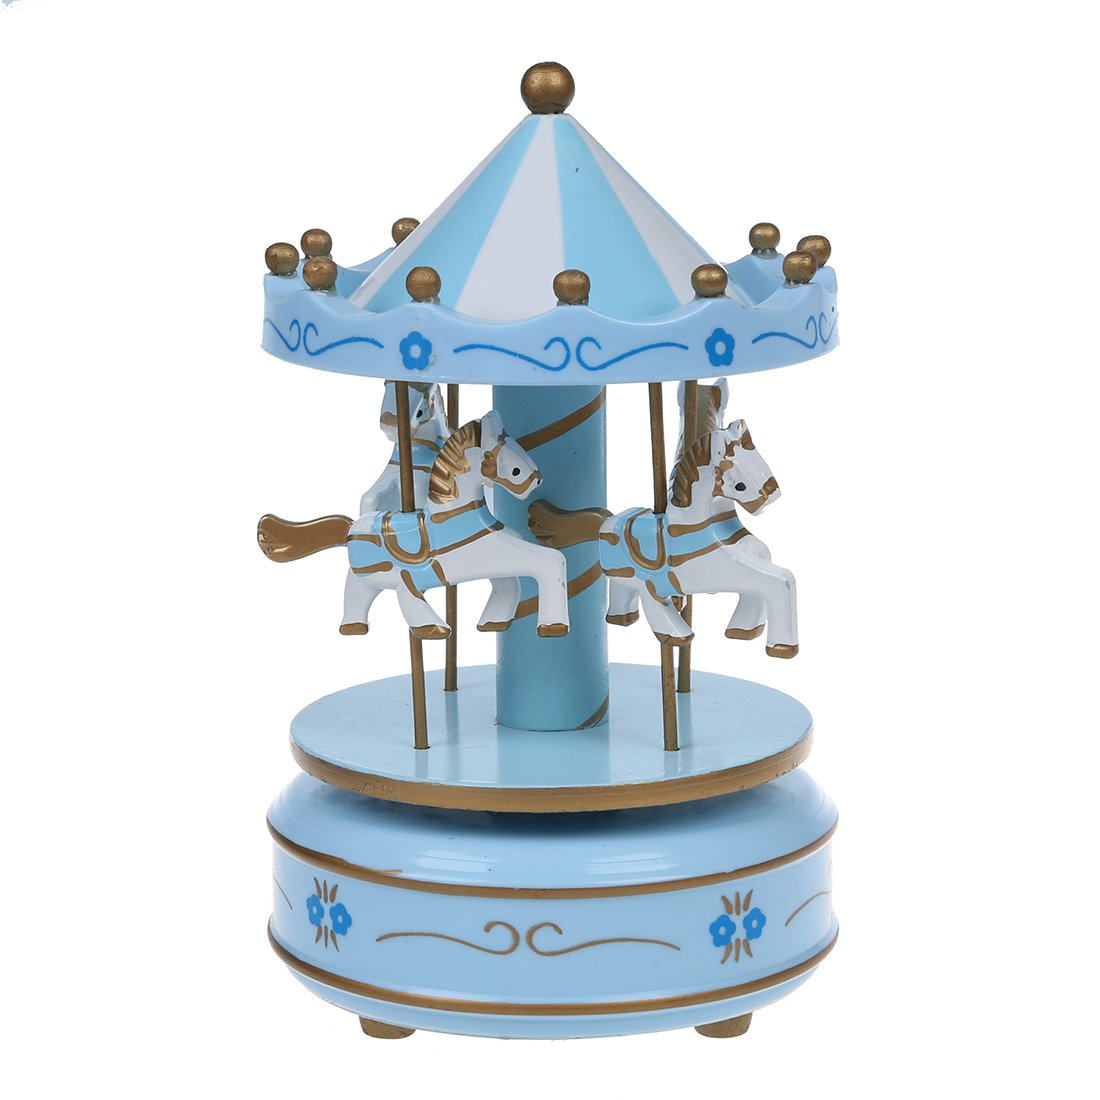 Carousels - SODIAL(R)Musical carousel horse wooden carousel music box toy child baby Deep Blue game SODIAL (R) 075766A4